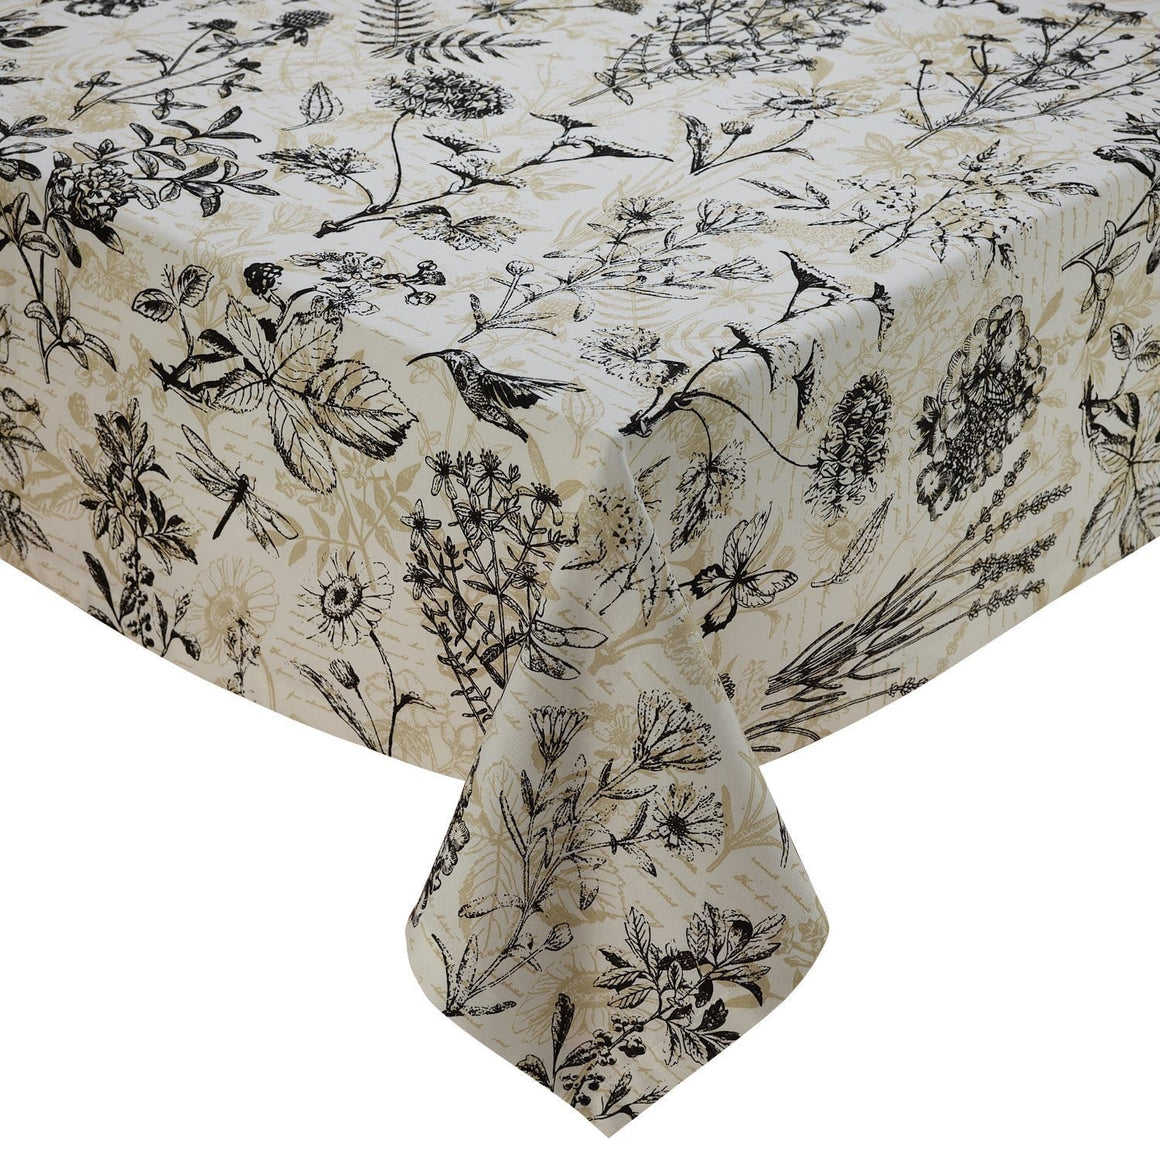 Botanical Printed Tablecloth